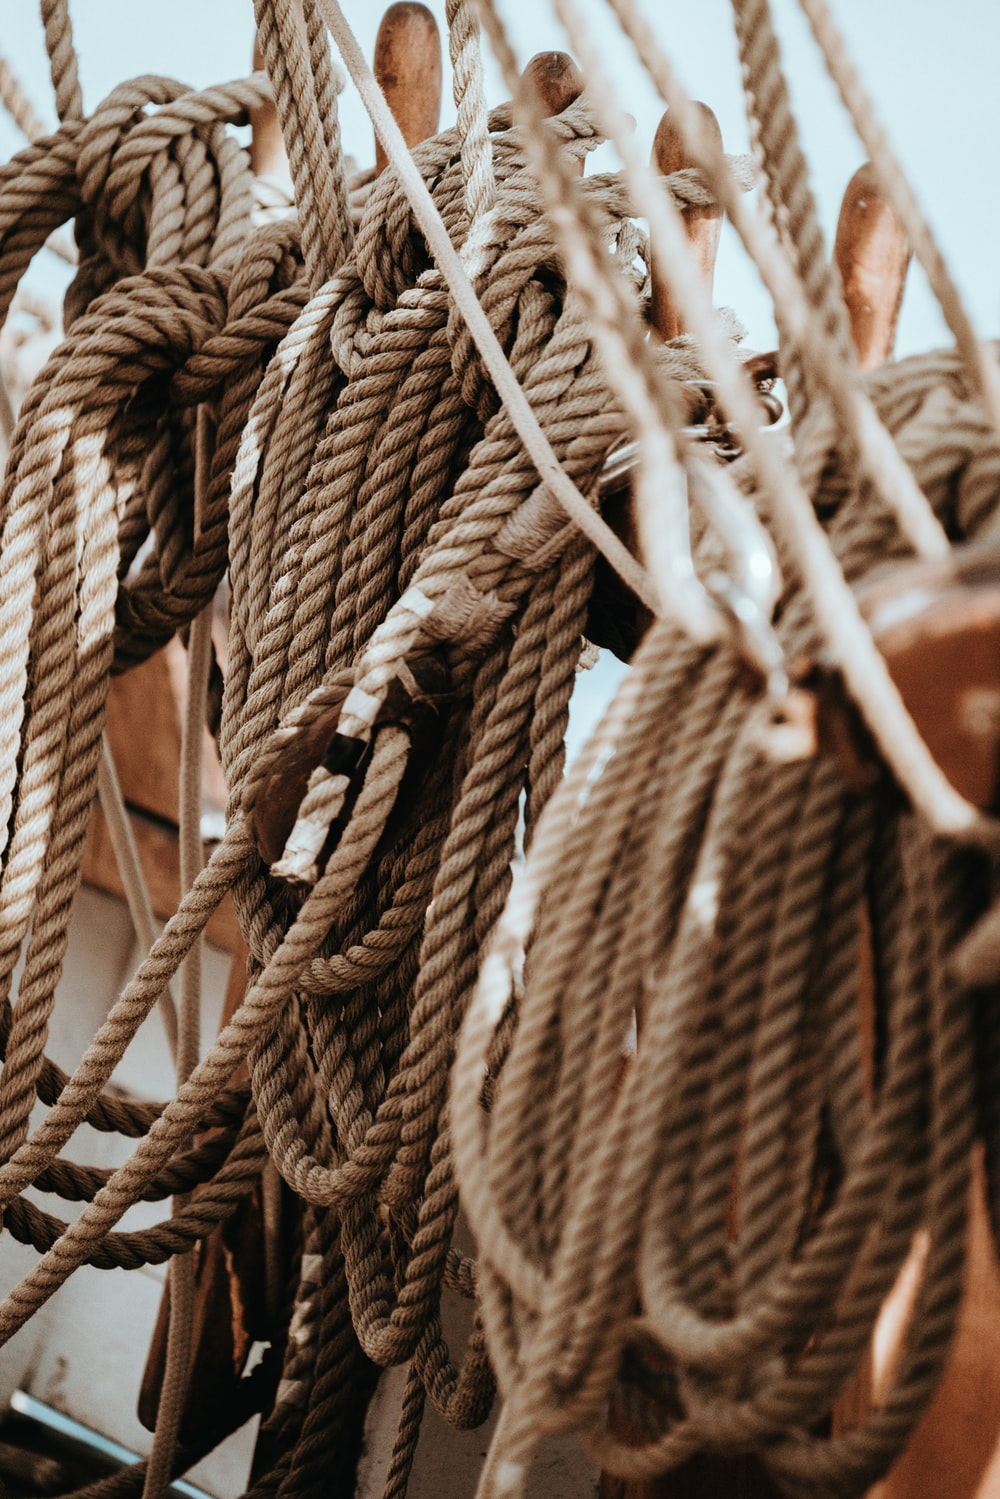 ropes on rope rack